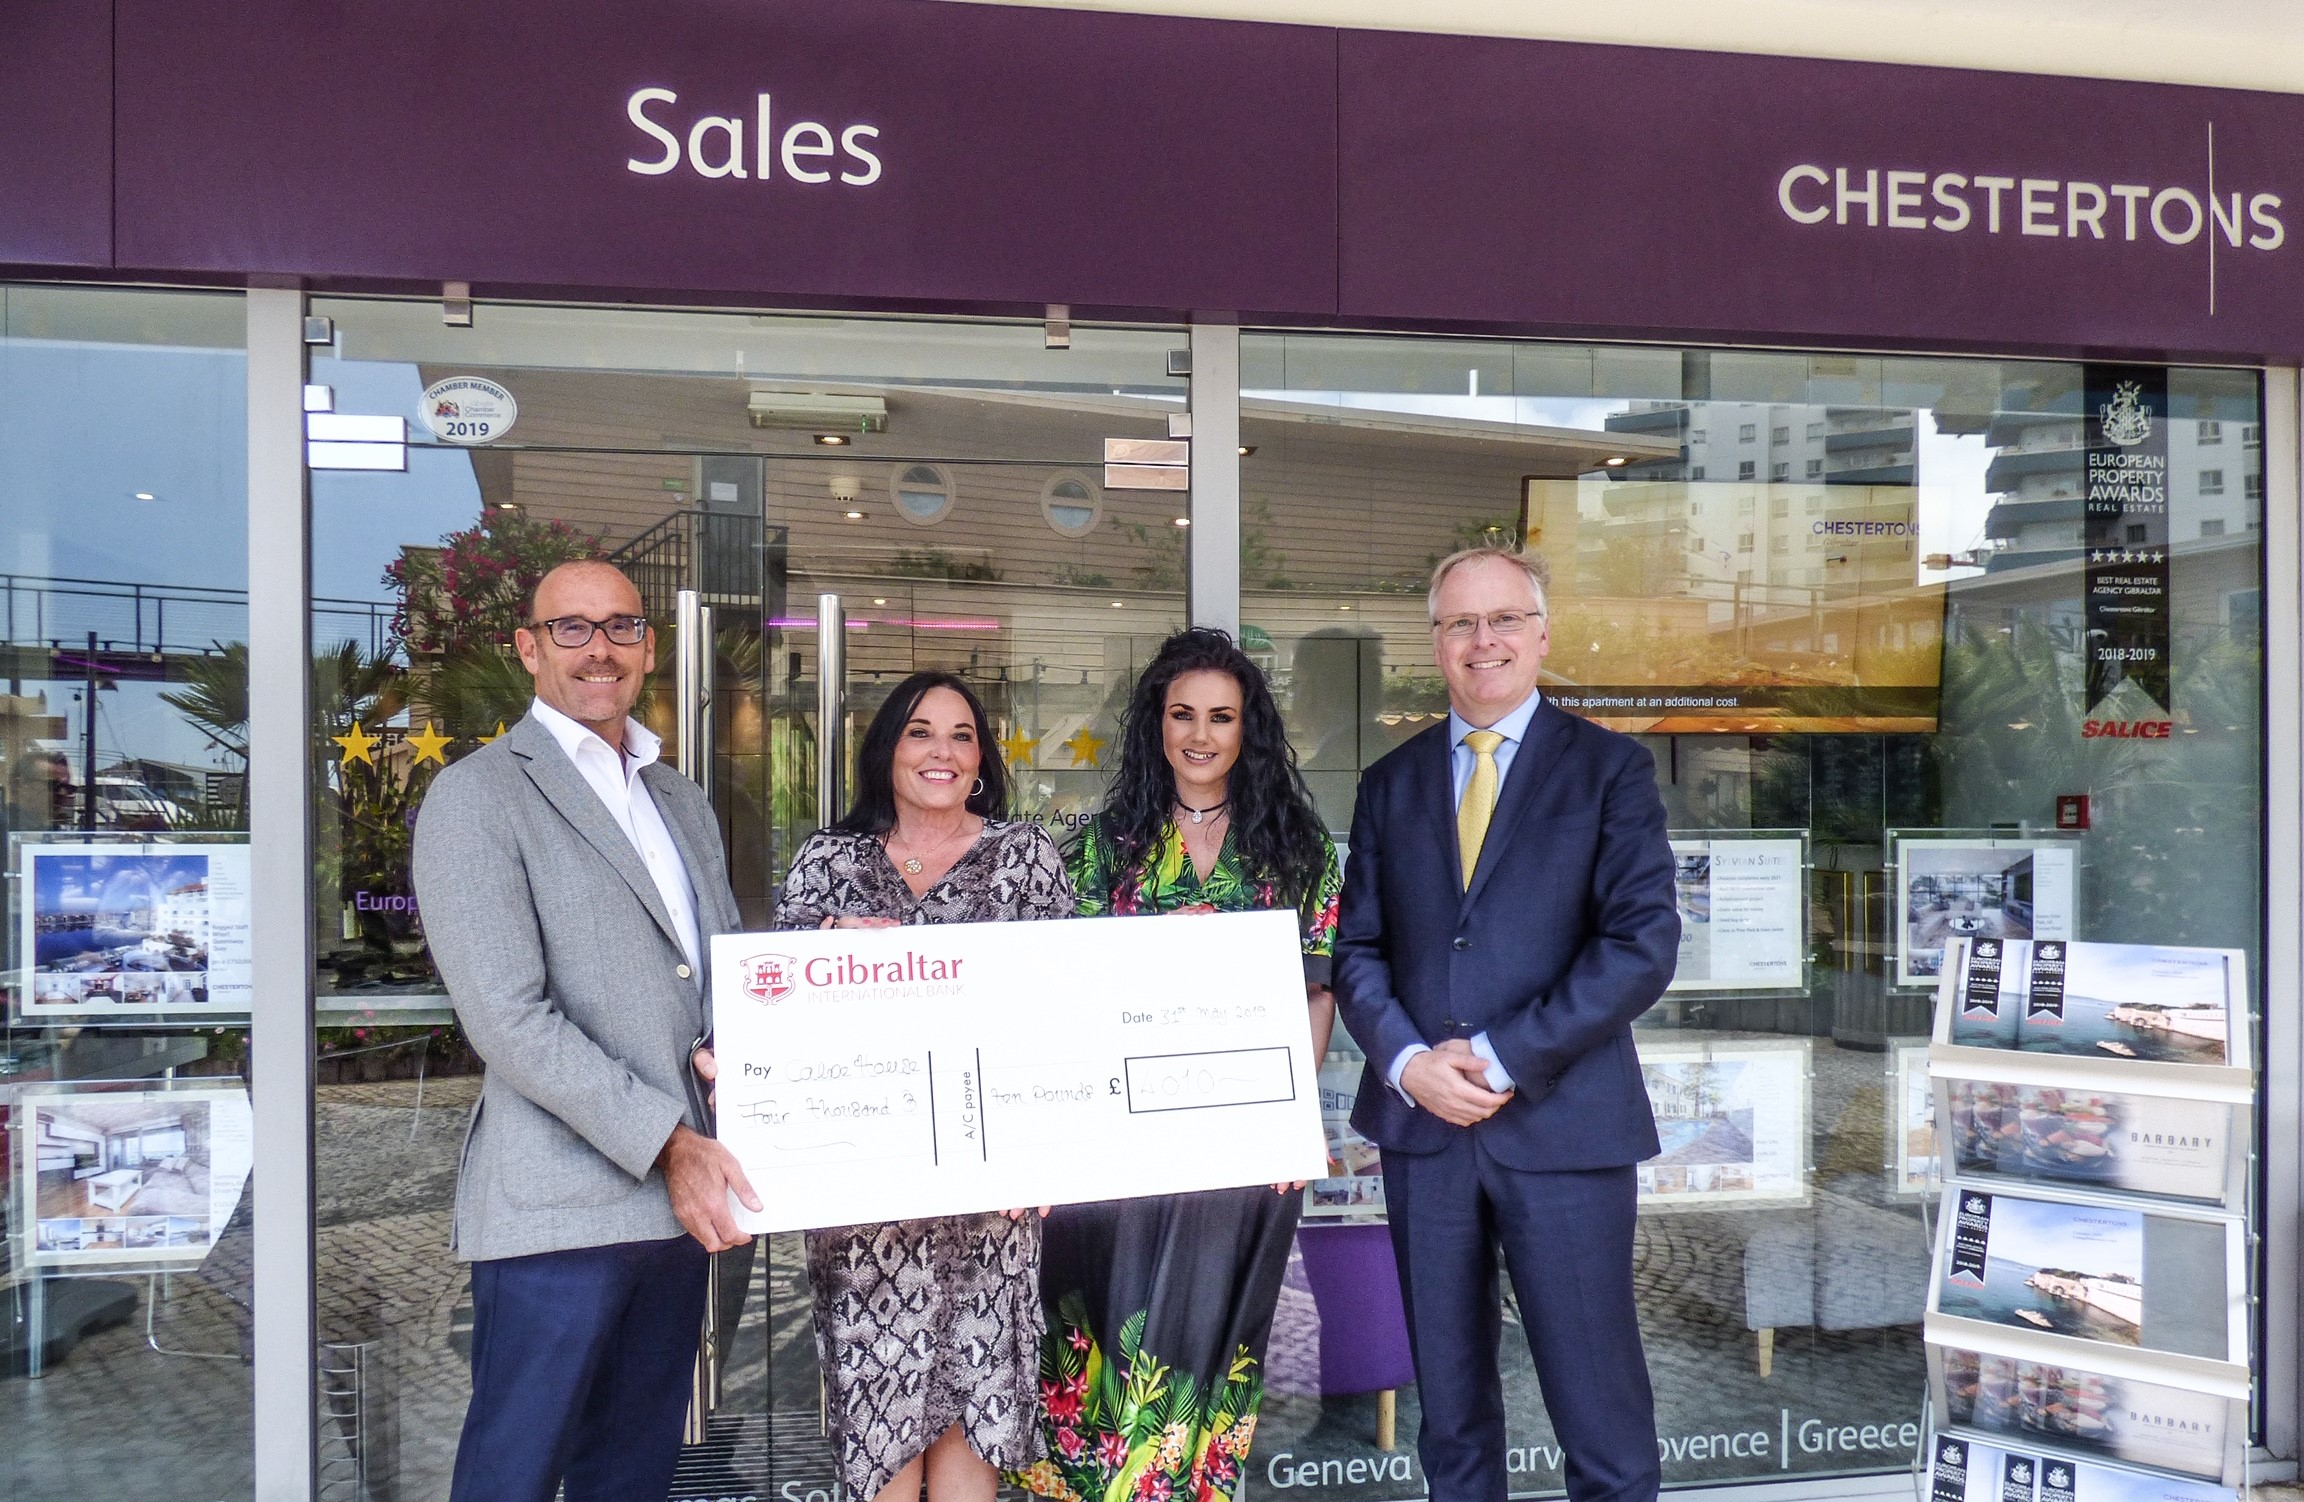 Chestertons, Sovereign Insurance and Little Bay raise £8,000 for charity  Image